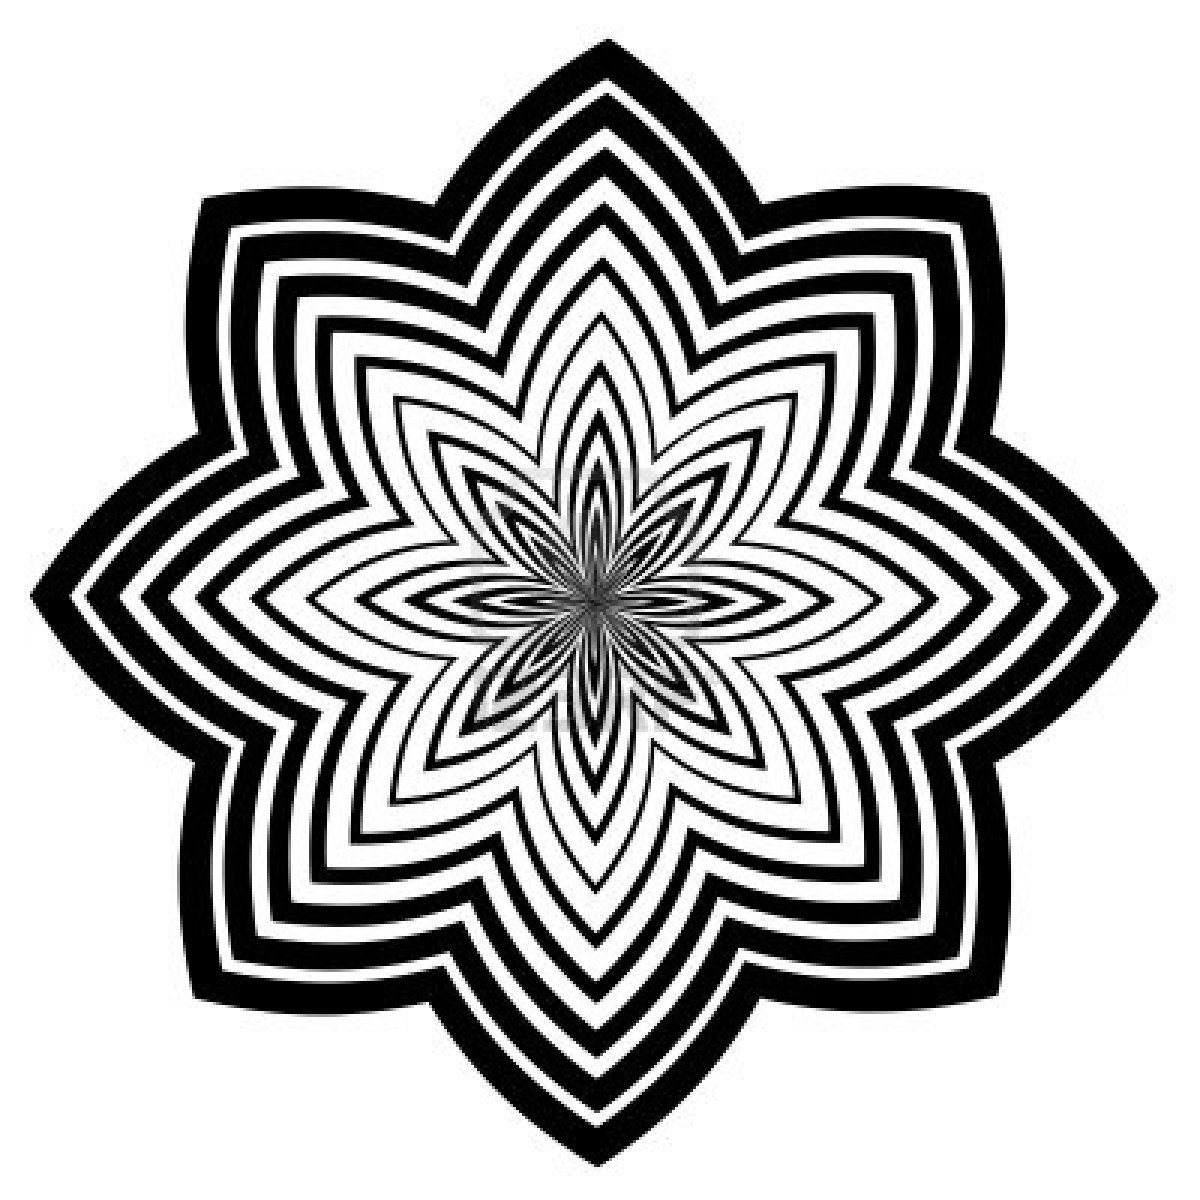 Black And White Design black and white design pattern #blackandwhite | b/w patterns